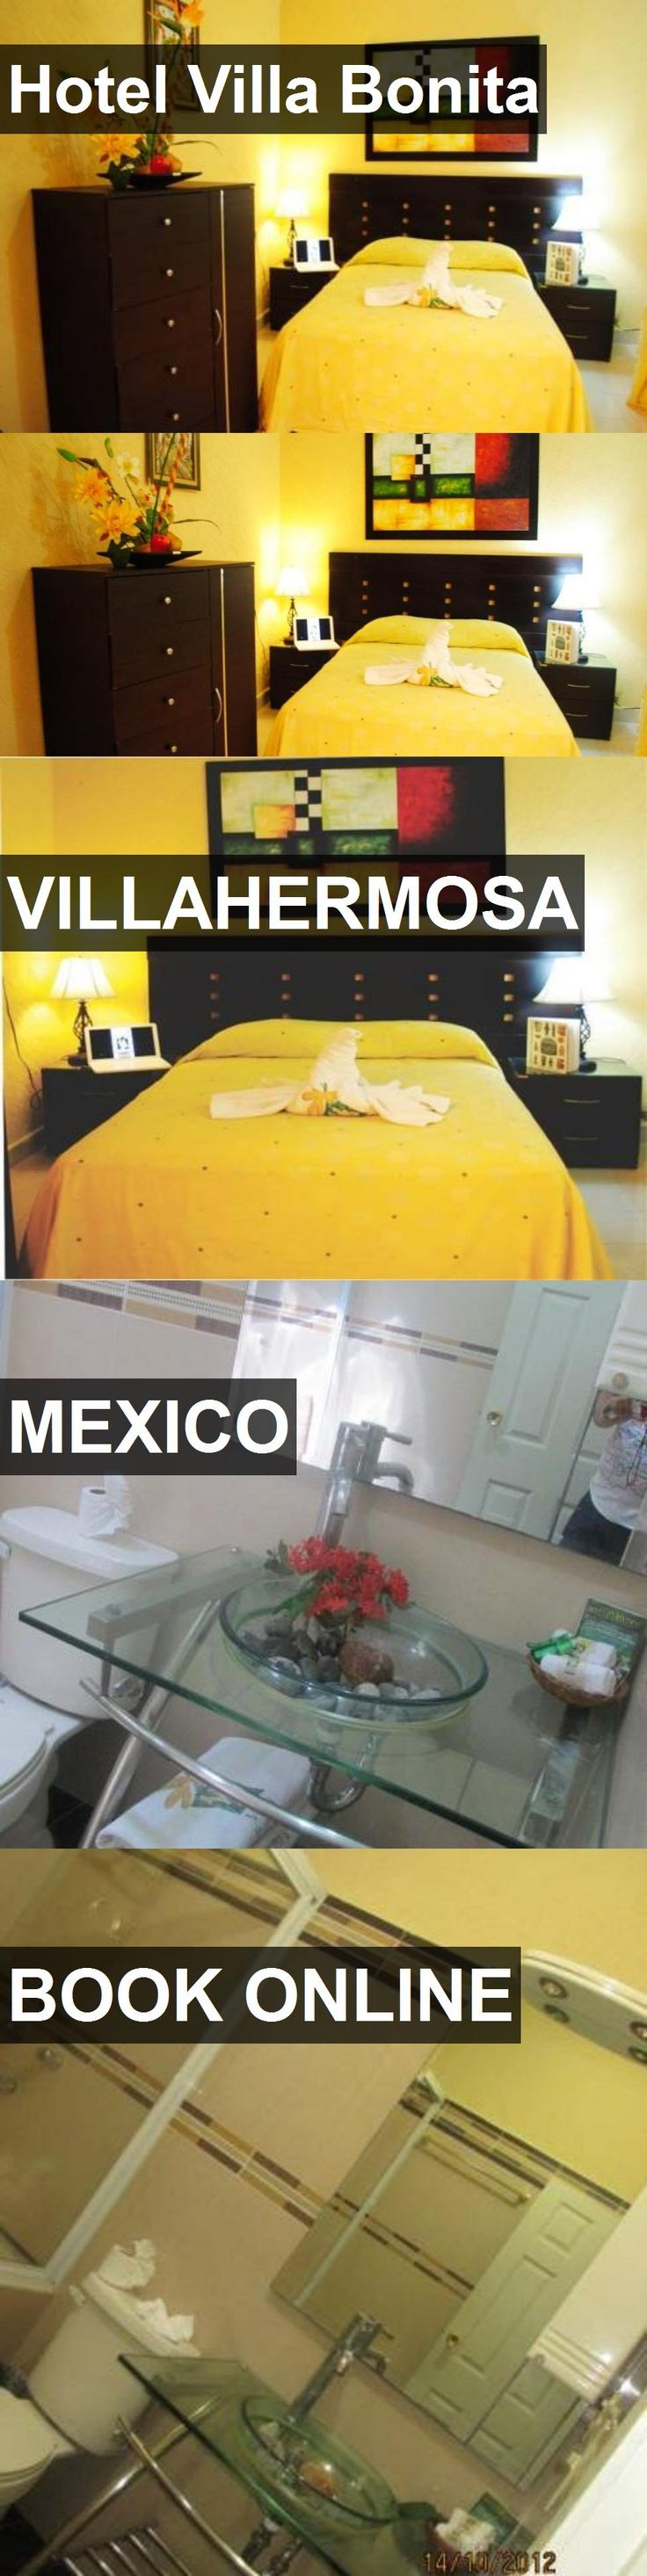 Hotel Villa Bonita in Villahermosa, Mexico. For more information, photos, reviews and best prices please follow the link. #Mexico #Villahermosa #travel #vacation #hotel